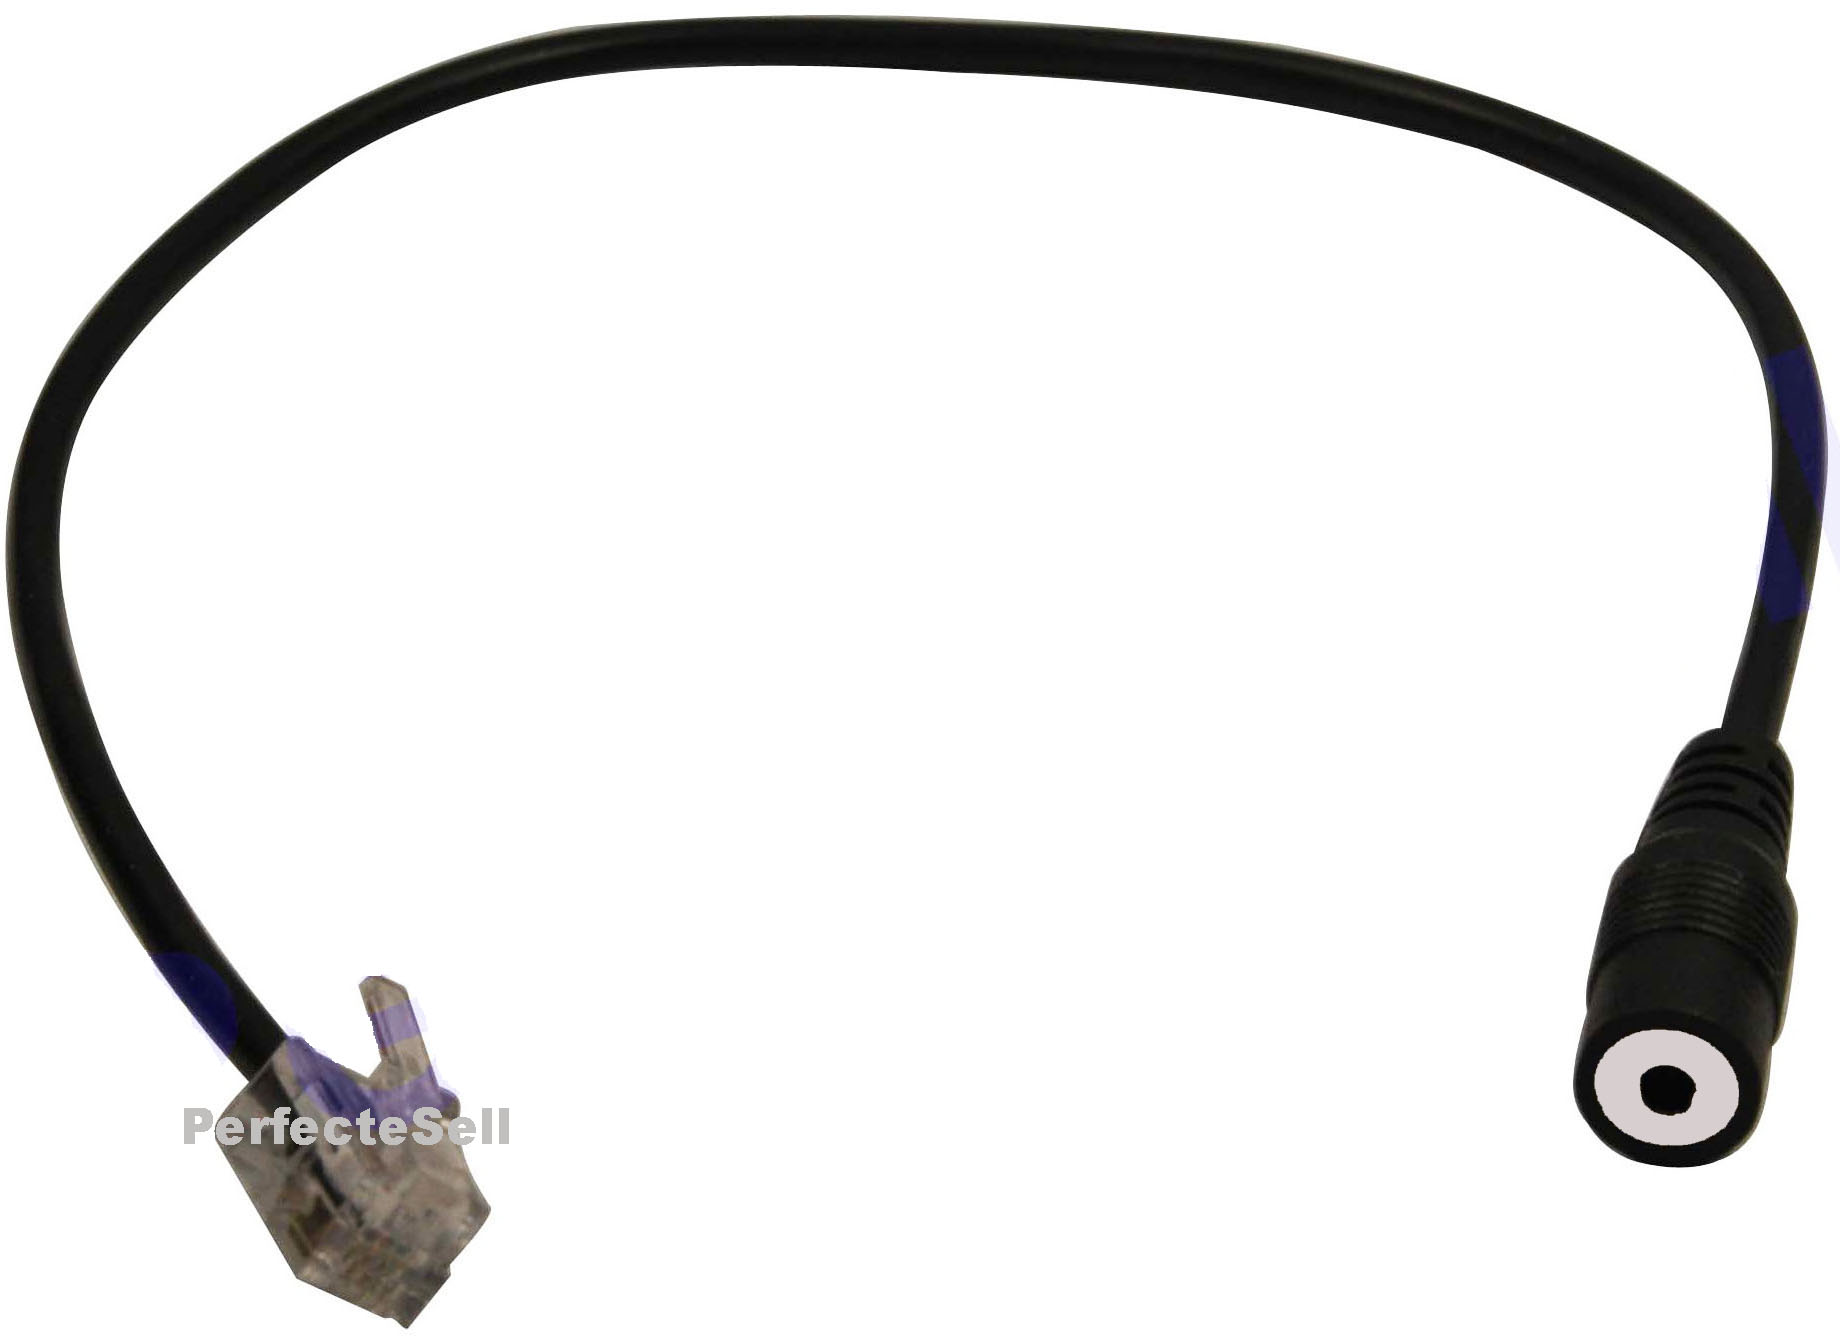 Ip Phone Headset Adapter How To Identify Ics In Your Cisco 7940g And 7960g Phones Images Of